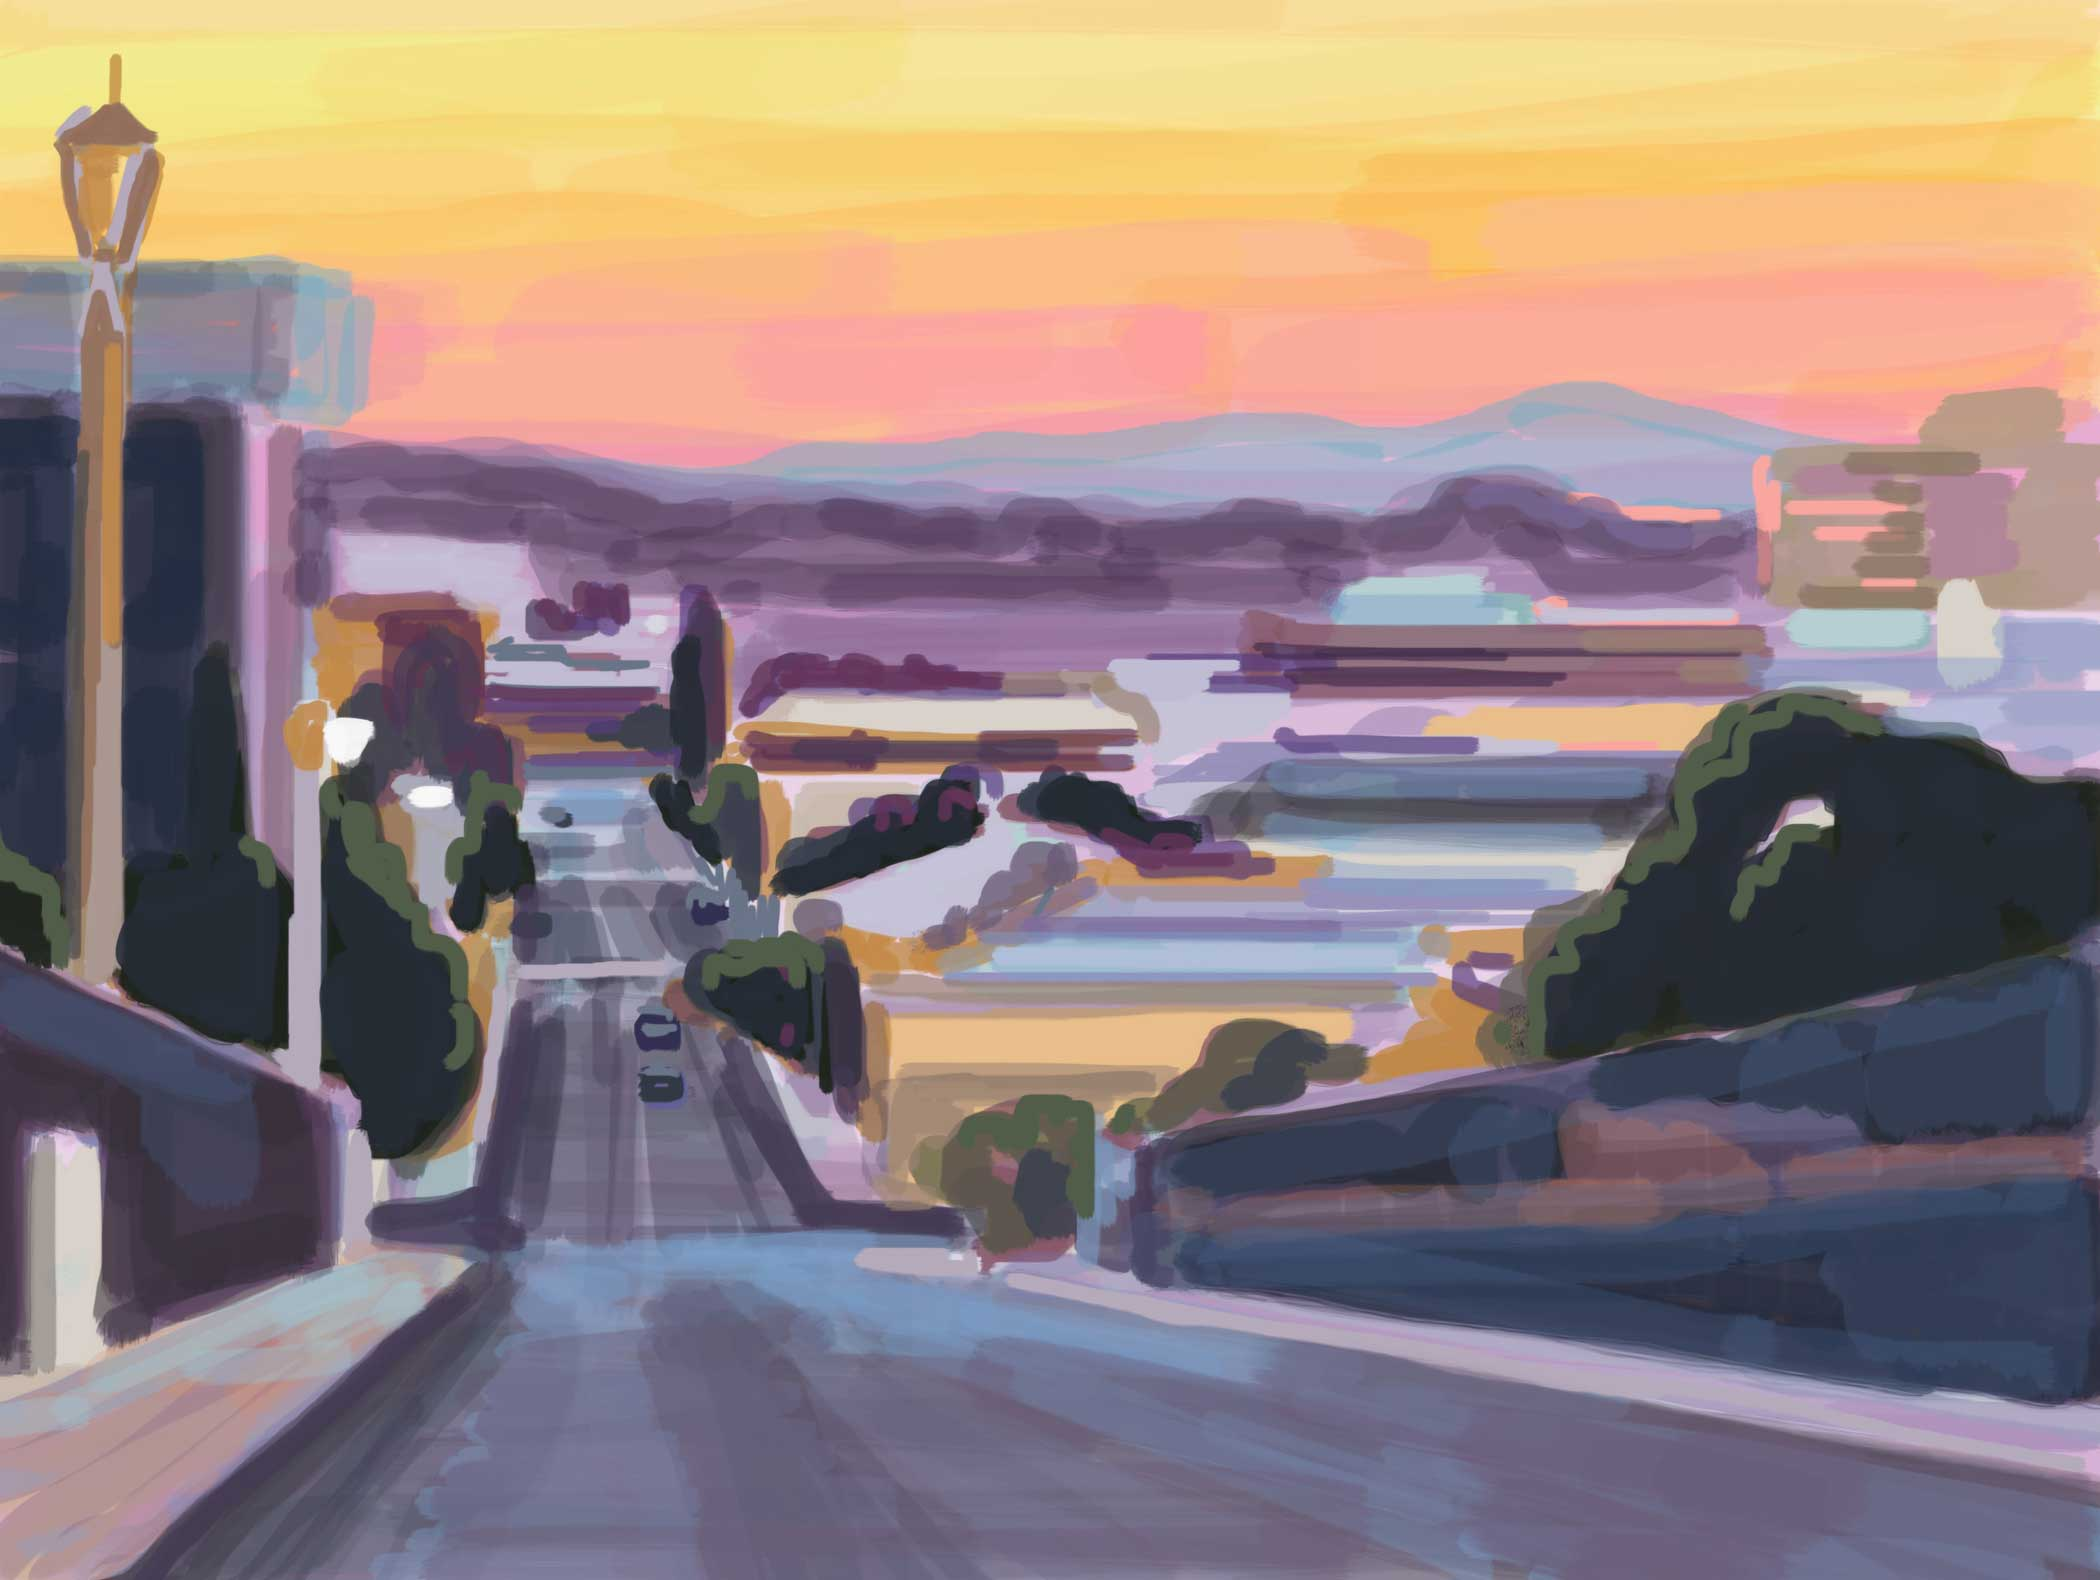 Brian Lotti's interest in exploring urban landscapes stems from his years as a professional skateboarder. But now he hunts for colorful new places to paint. In Pico-Union, he uses an iPad Air 2, the Procreate app, and Pencil by FiftyThree to portray a radiant view of Los Angeles.